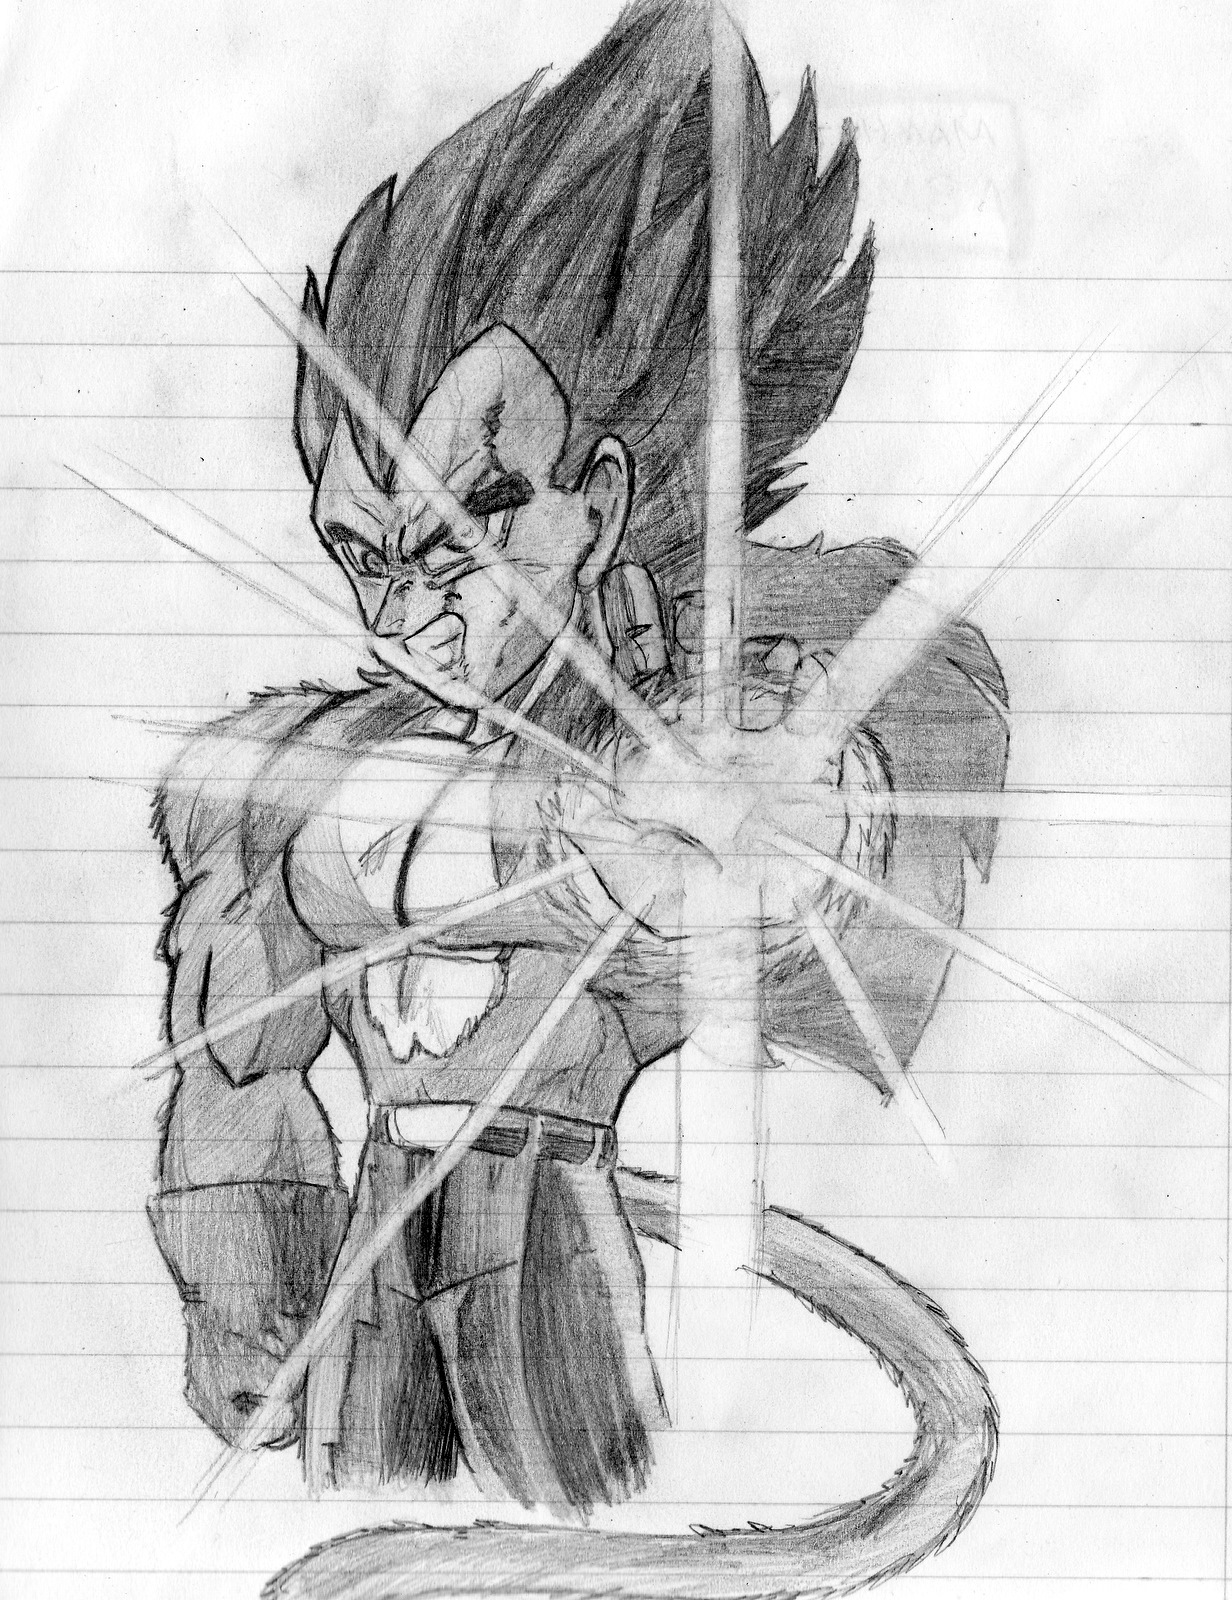 dragon ball z imagenes increibles  - dibujo a mano